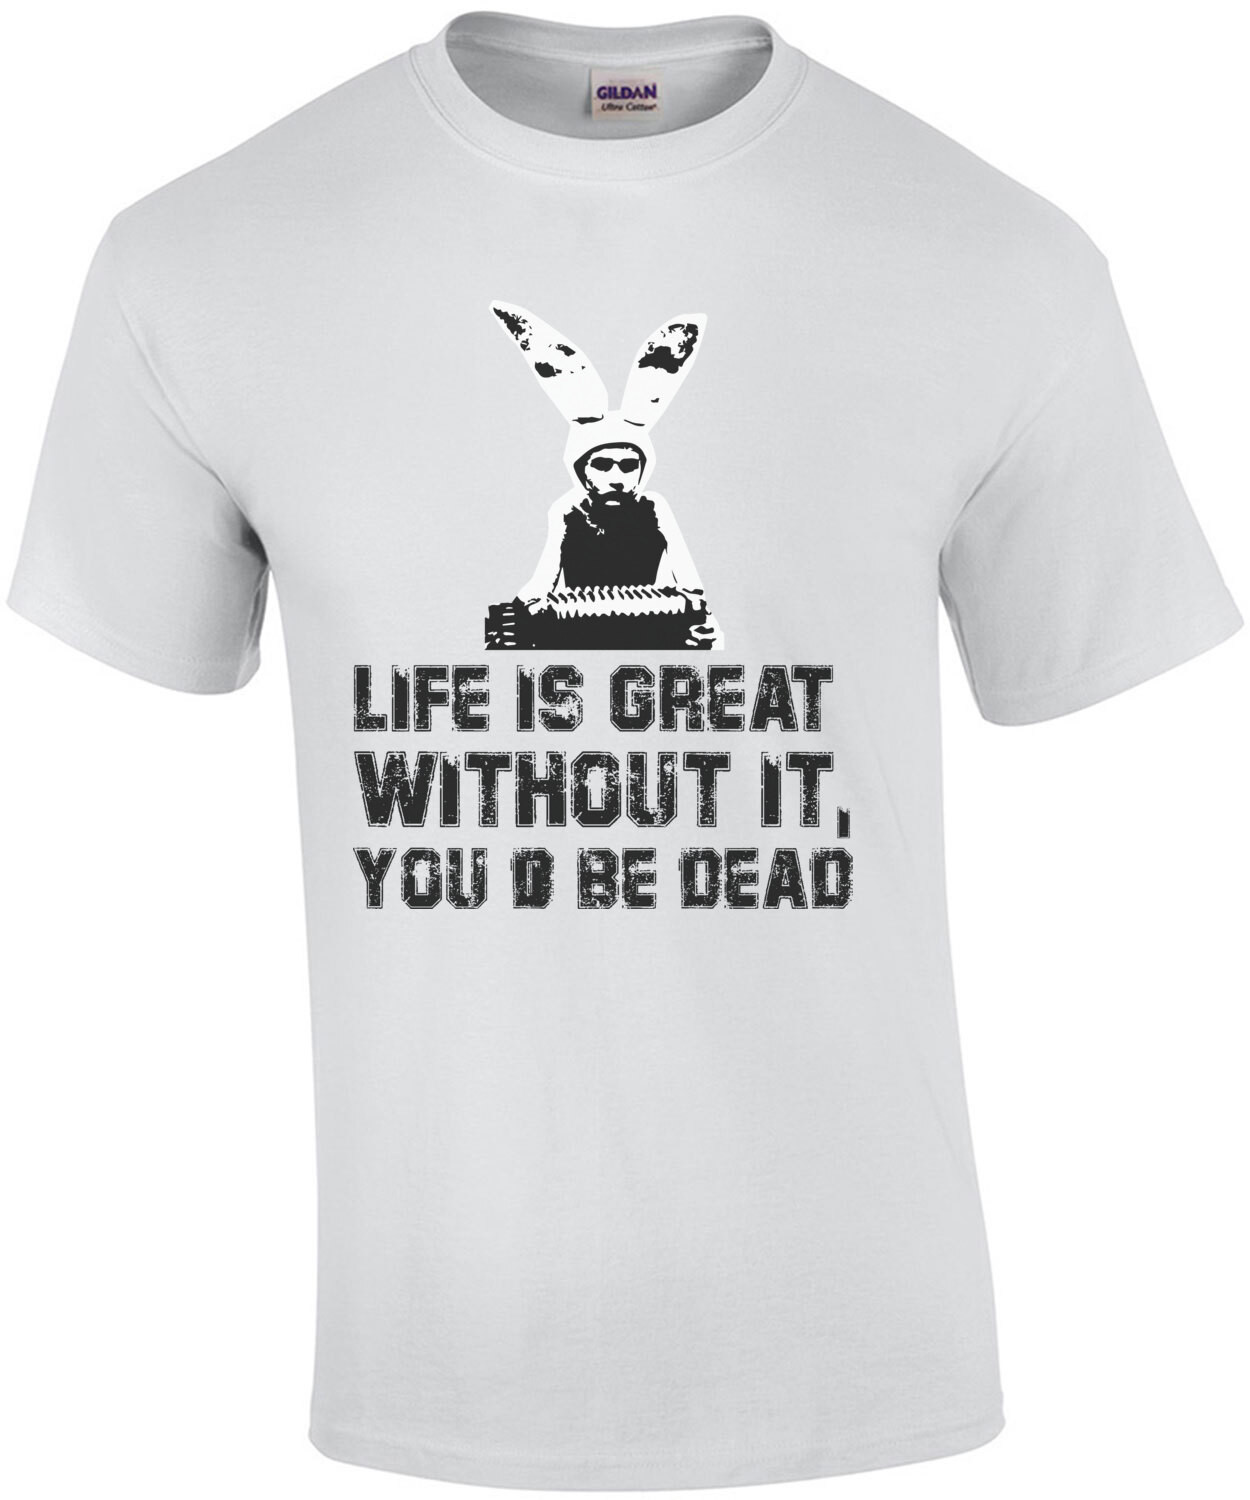 Life is great without it, you'd be dead - Gummo - 90's T-Shirt